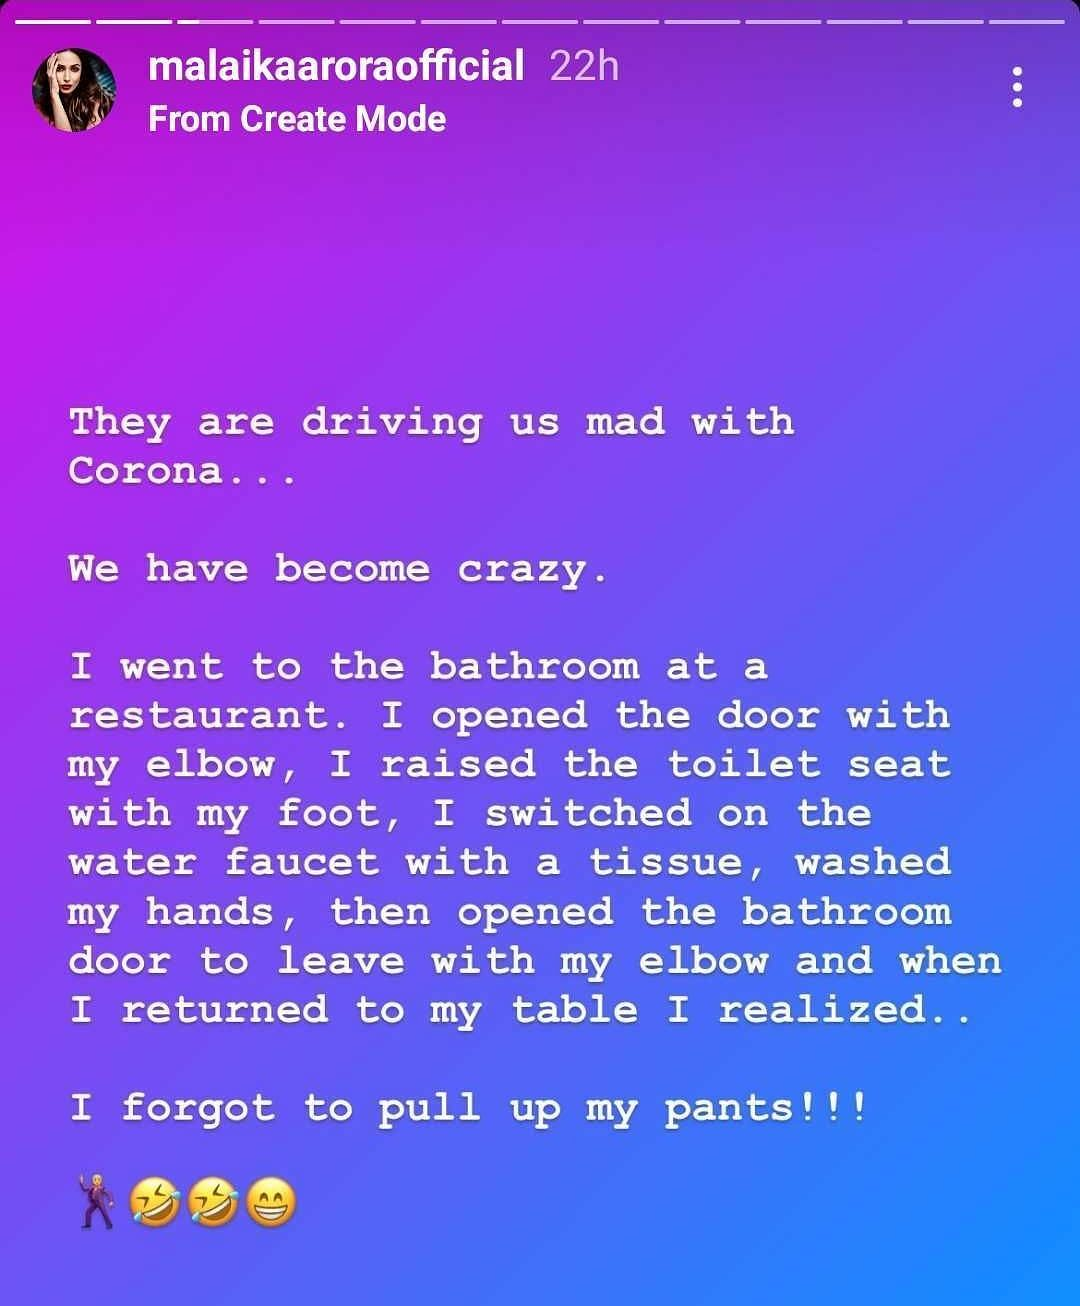 When Malaika Arora forgot to pull up her pants at a restaurant!